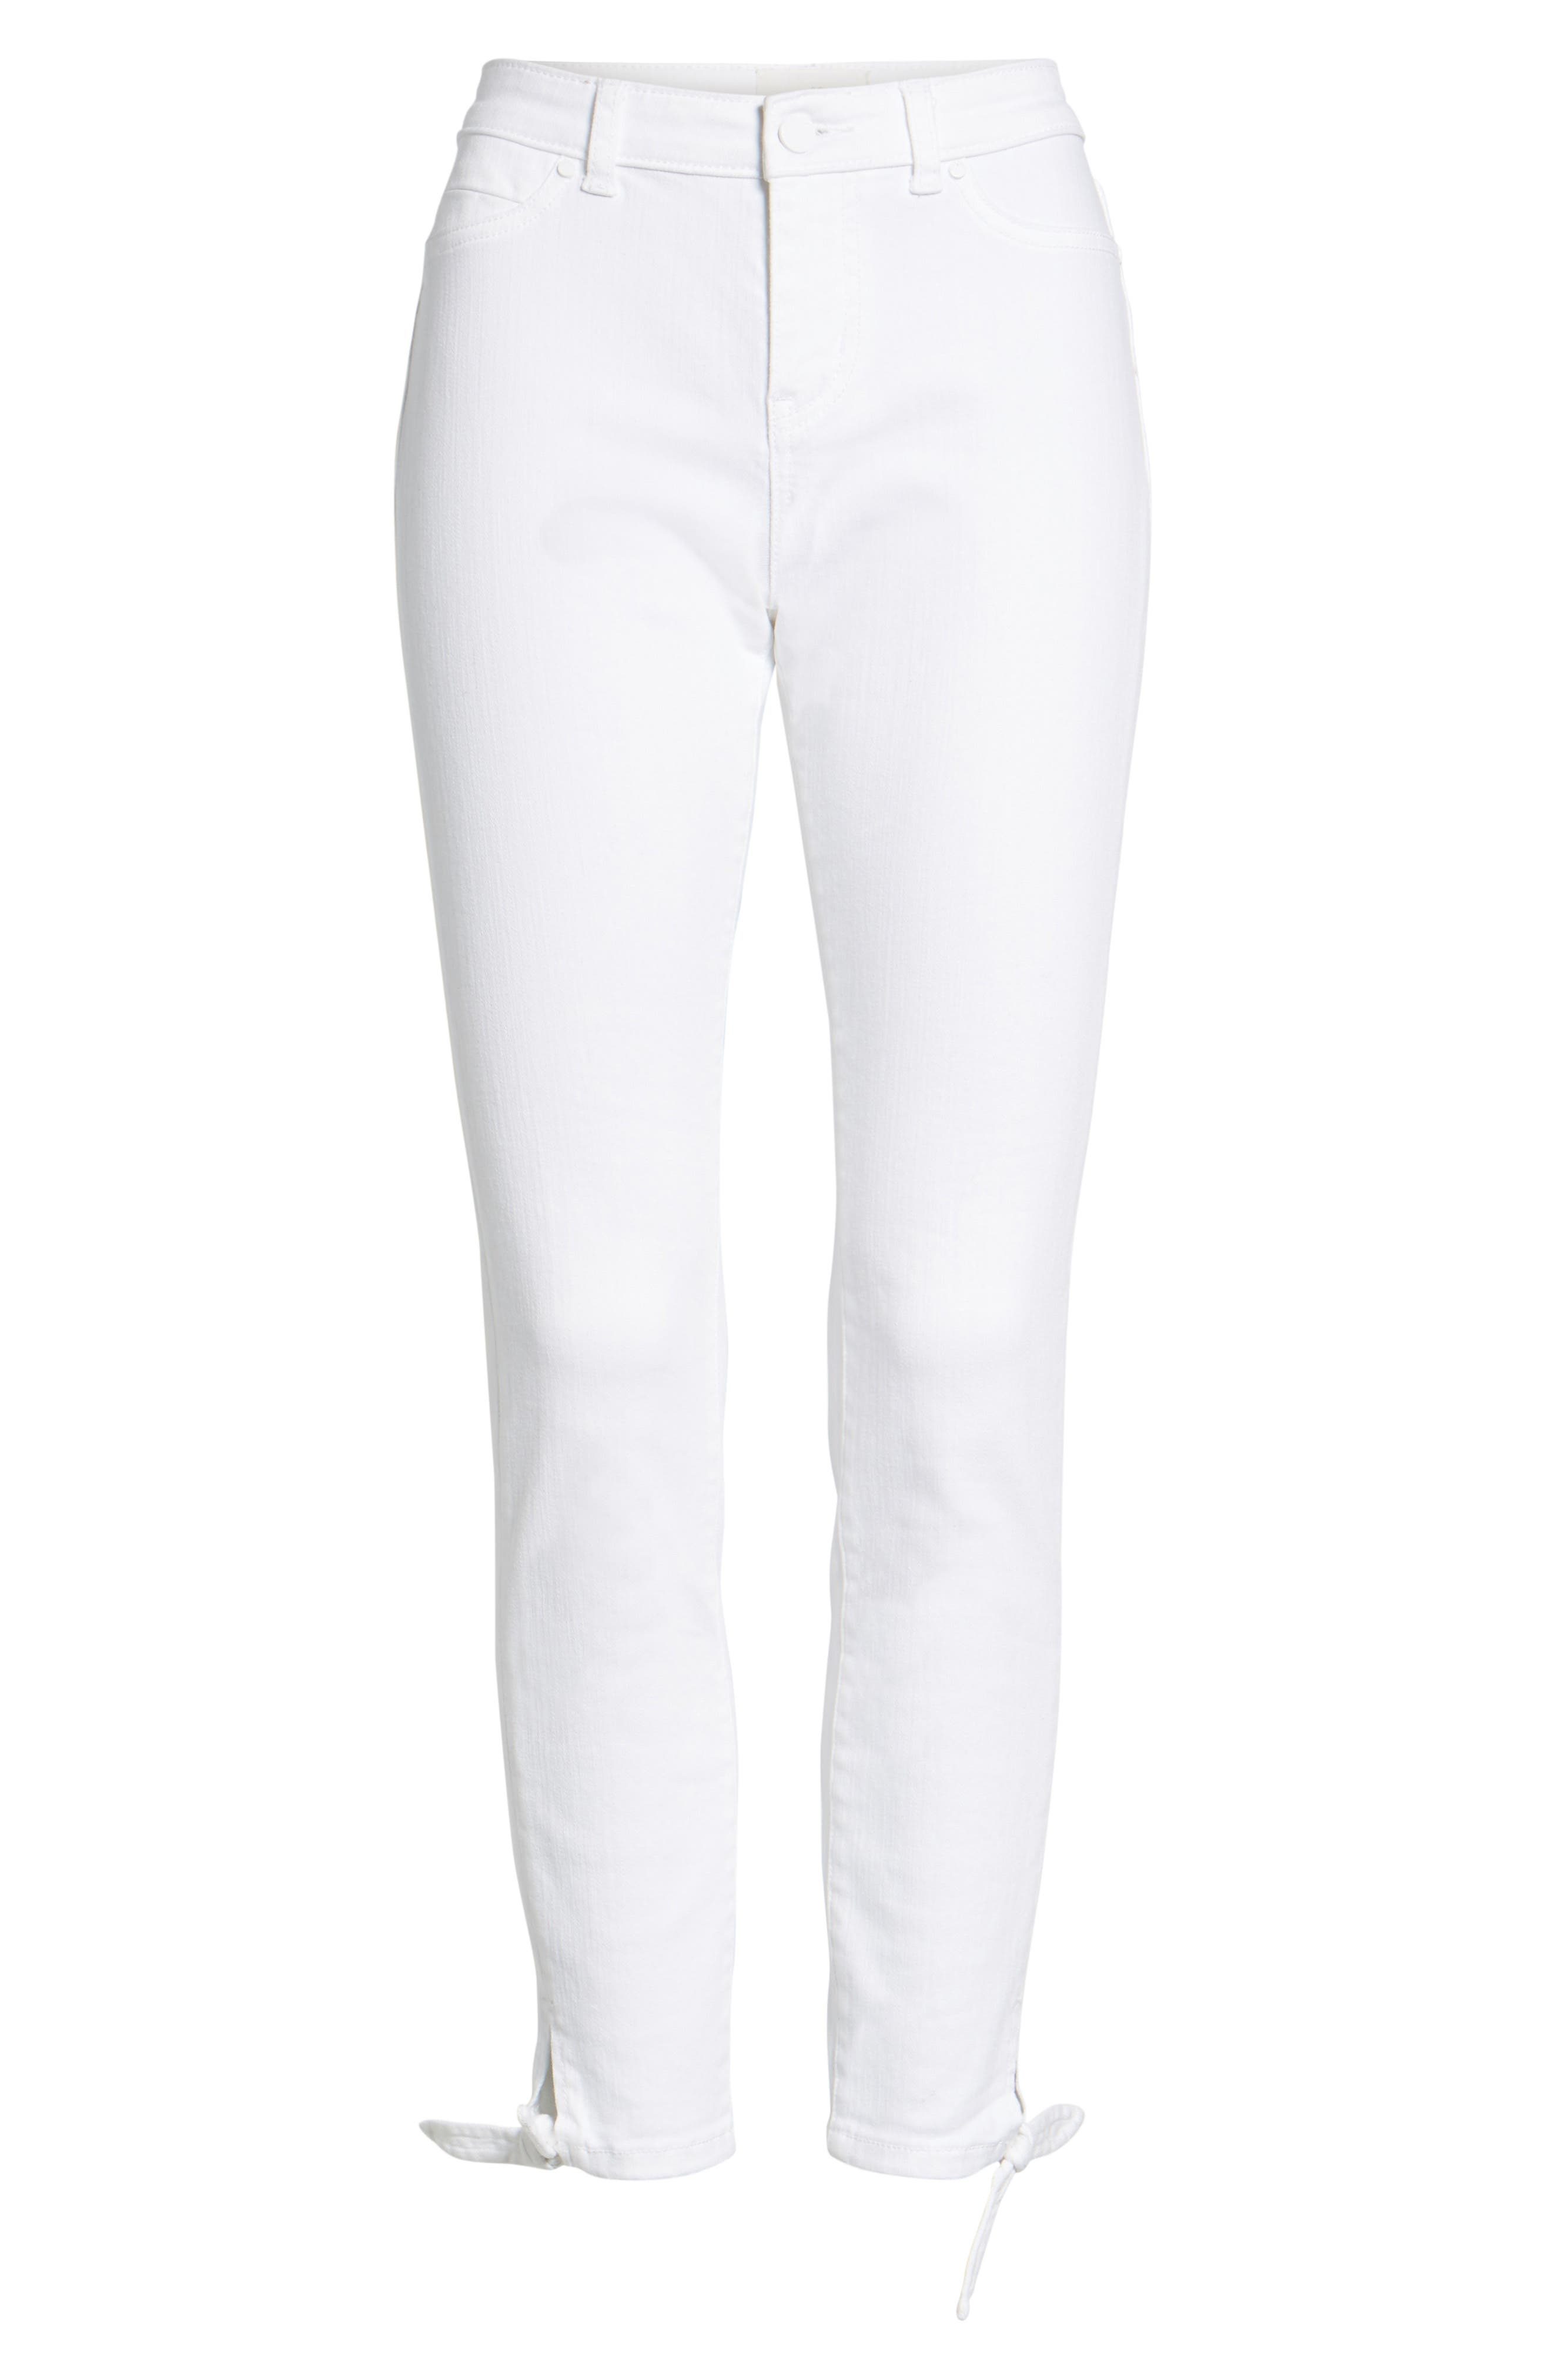 Tie Ankle Skinny Jeans,                             Alternate thumbnail 6, color,                             100